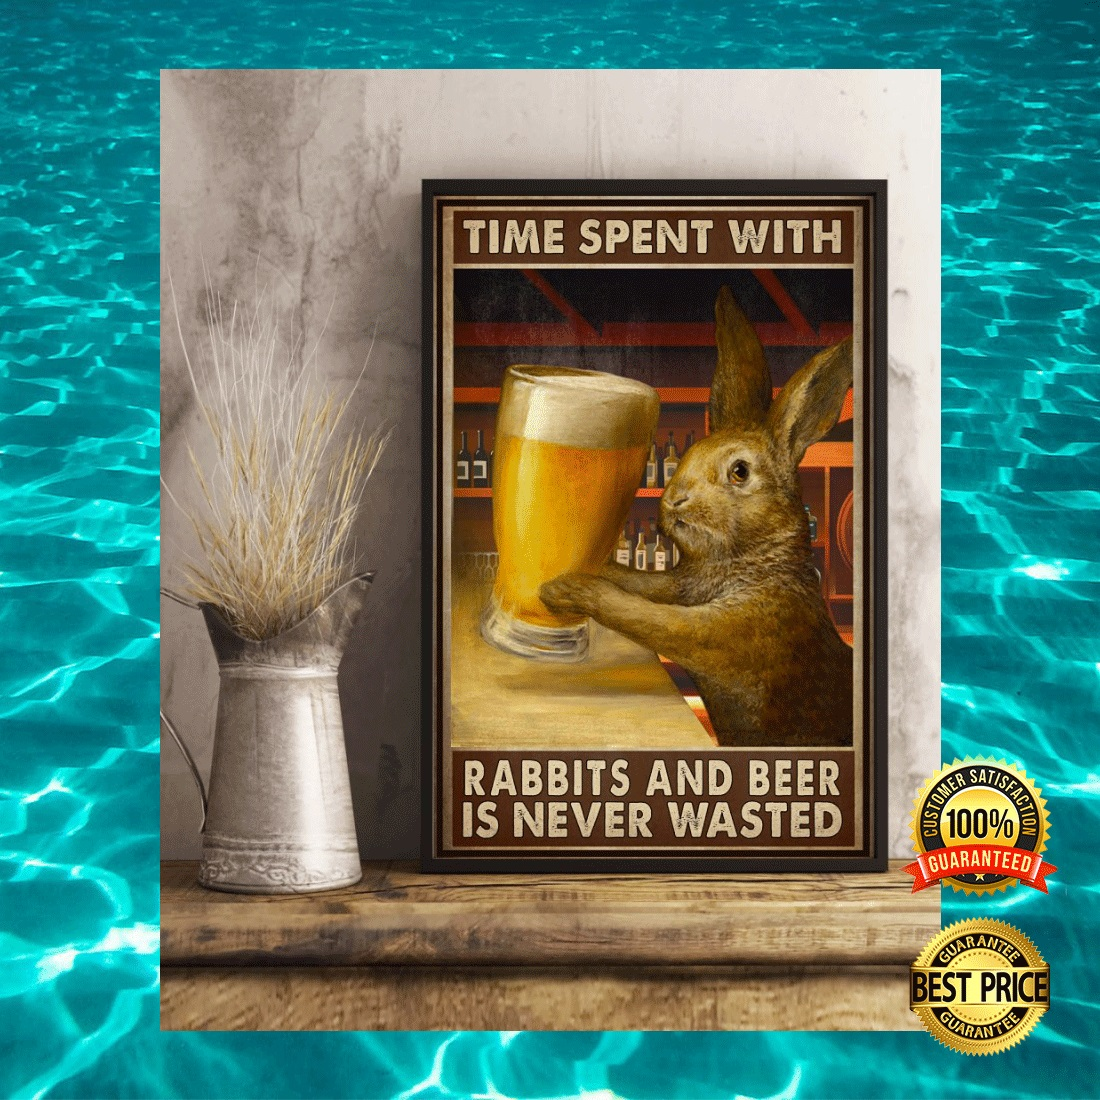 TIME SPENT WITH RABBITS AND BEER IS NEVER WASTED POSTER 6